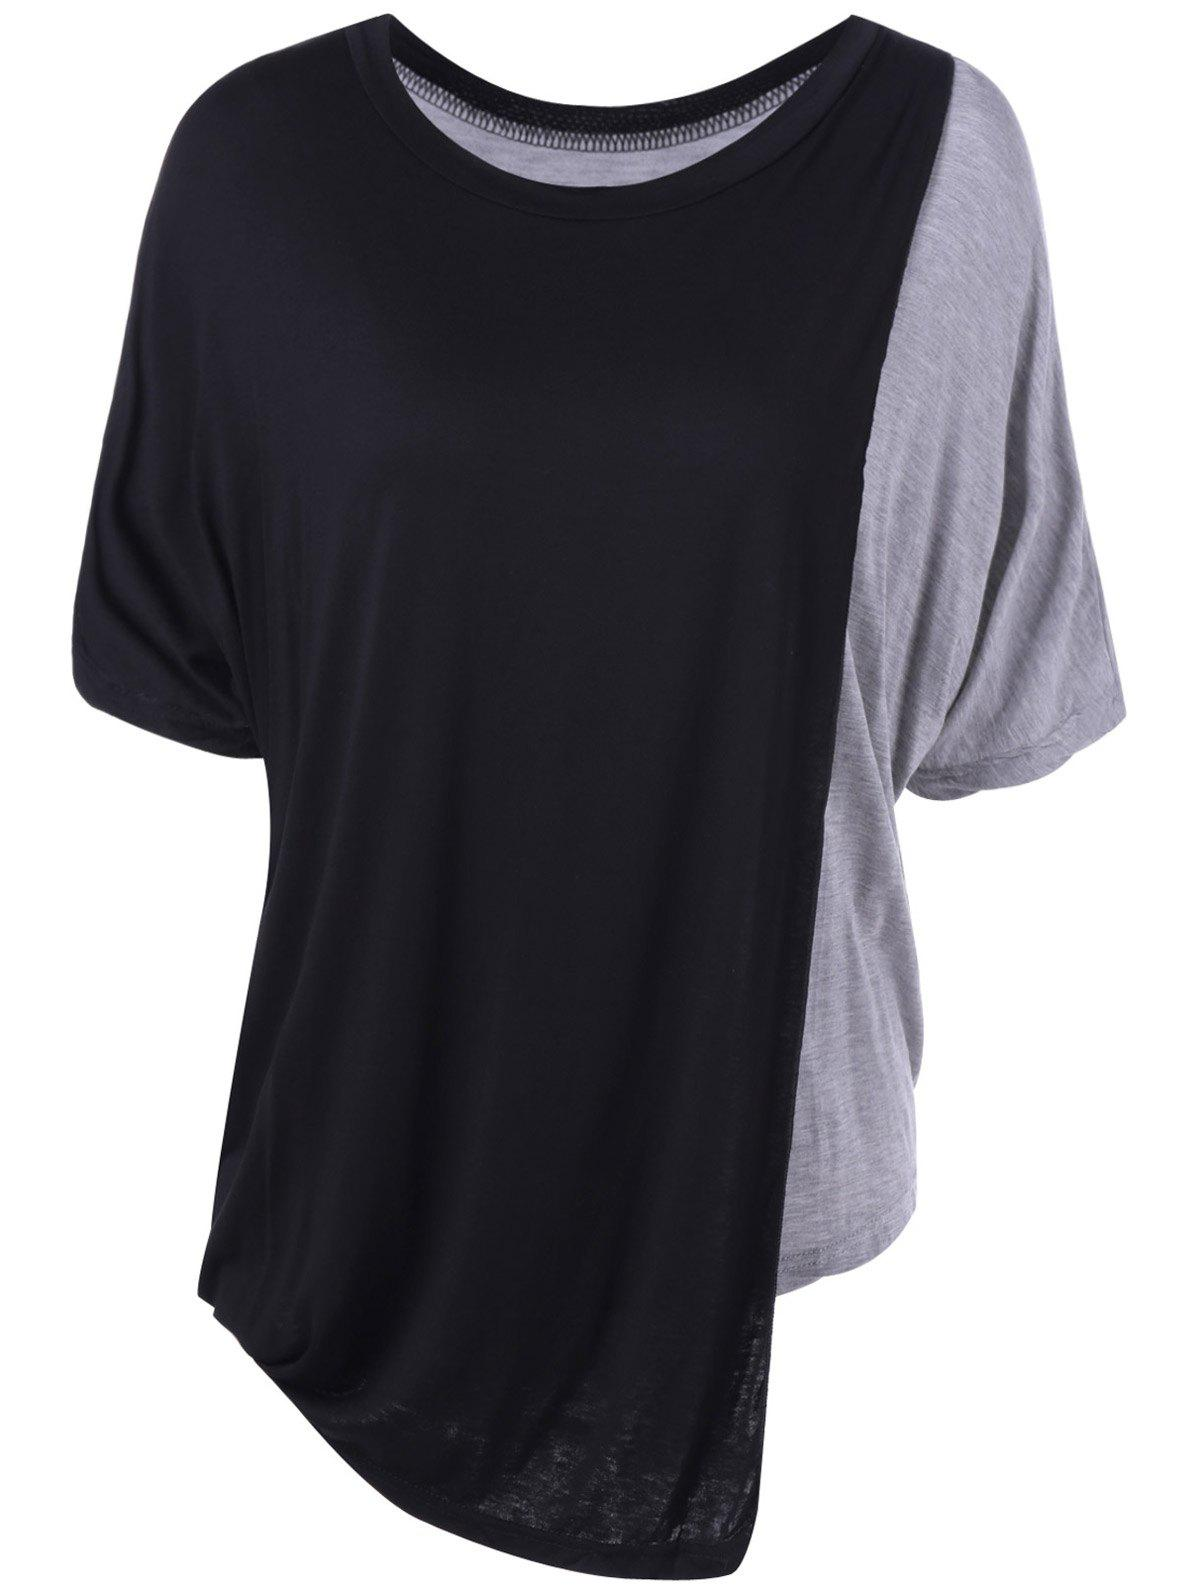 Simple Women's Round Neck Color Block Top - BLACK/GREY ONE SIZE(FIT SIZE XS TO M)